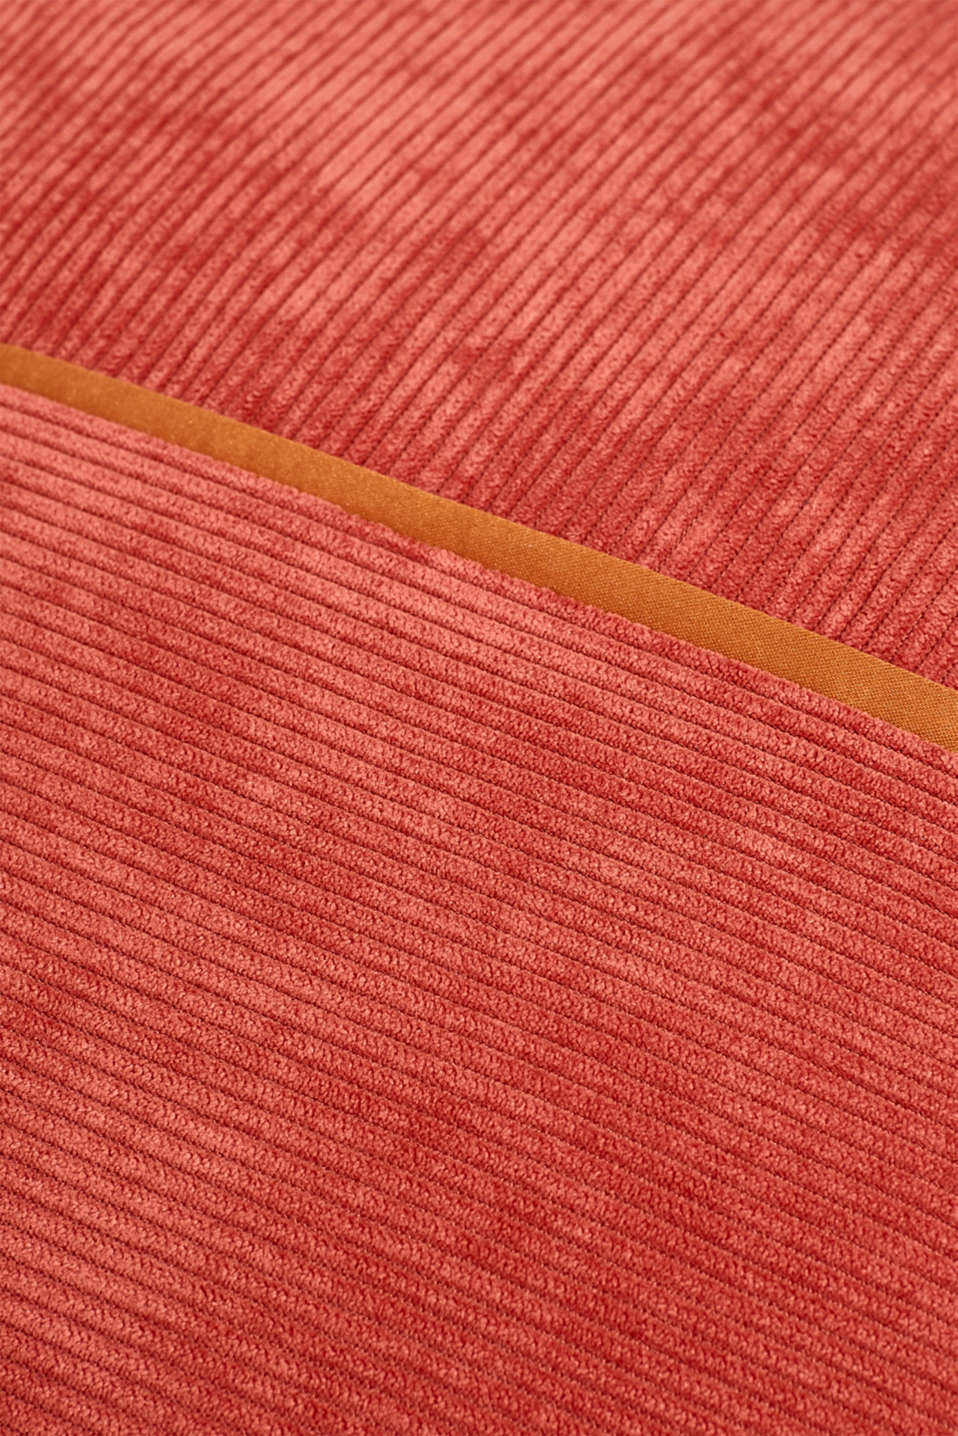 Cushion cover made of corduroy velvet, CORAL, detail image number 2